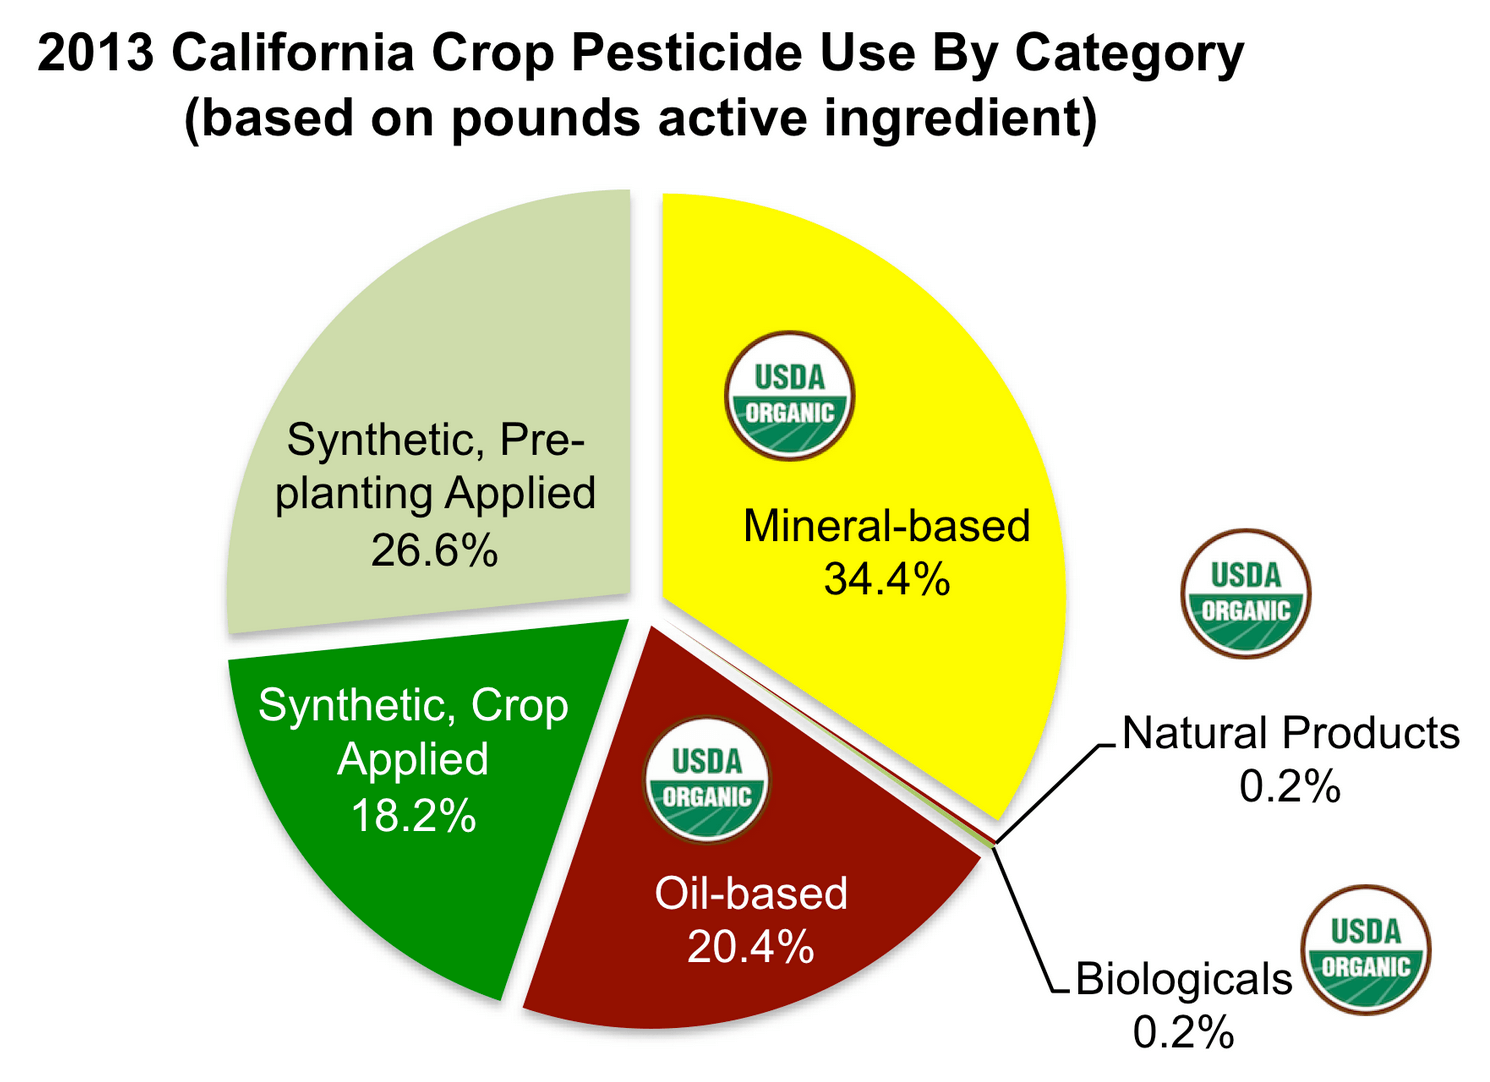 Of 171 million pounds of pesticides used in California crop agriculture in 2013, this is the breakdown by type